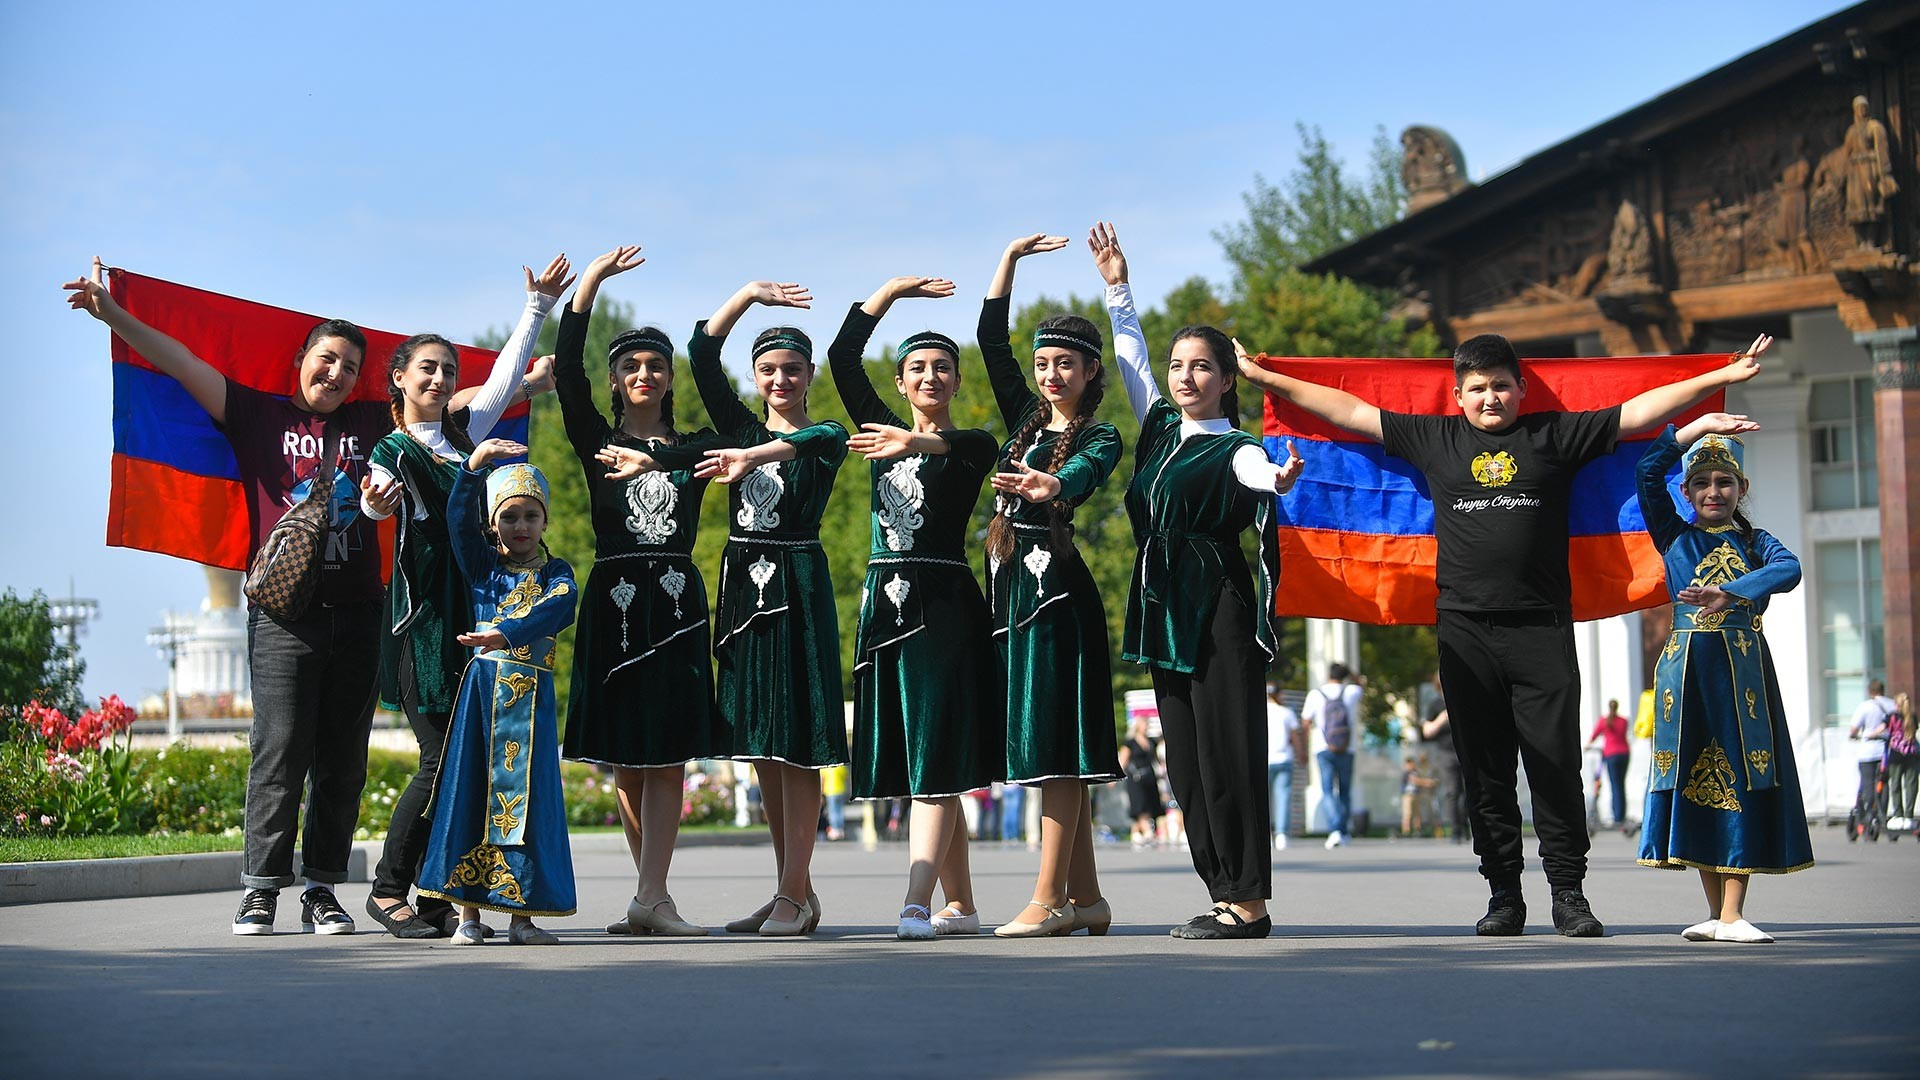 Festival of national hospitality of the peoples of Russia and the CIS countries in Moscow.